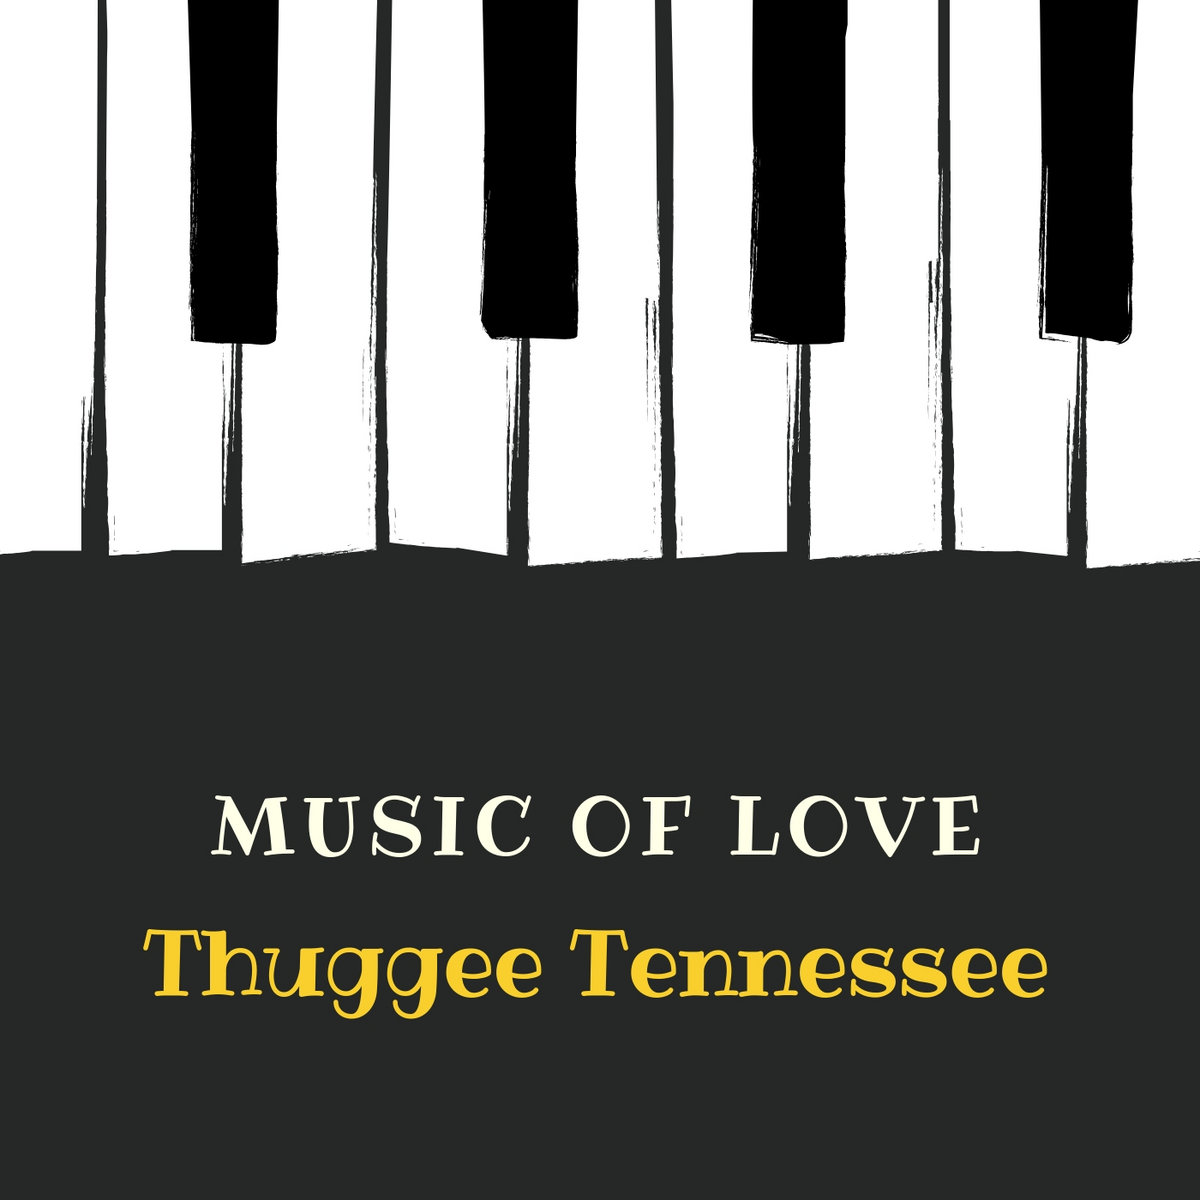 Music Of Love (alt mix - instrumental) - FREE DOWNLOAD by Thuggee Tennessee